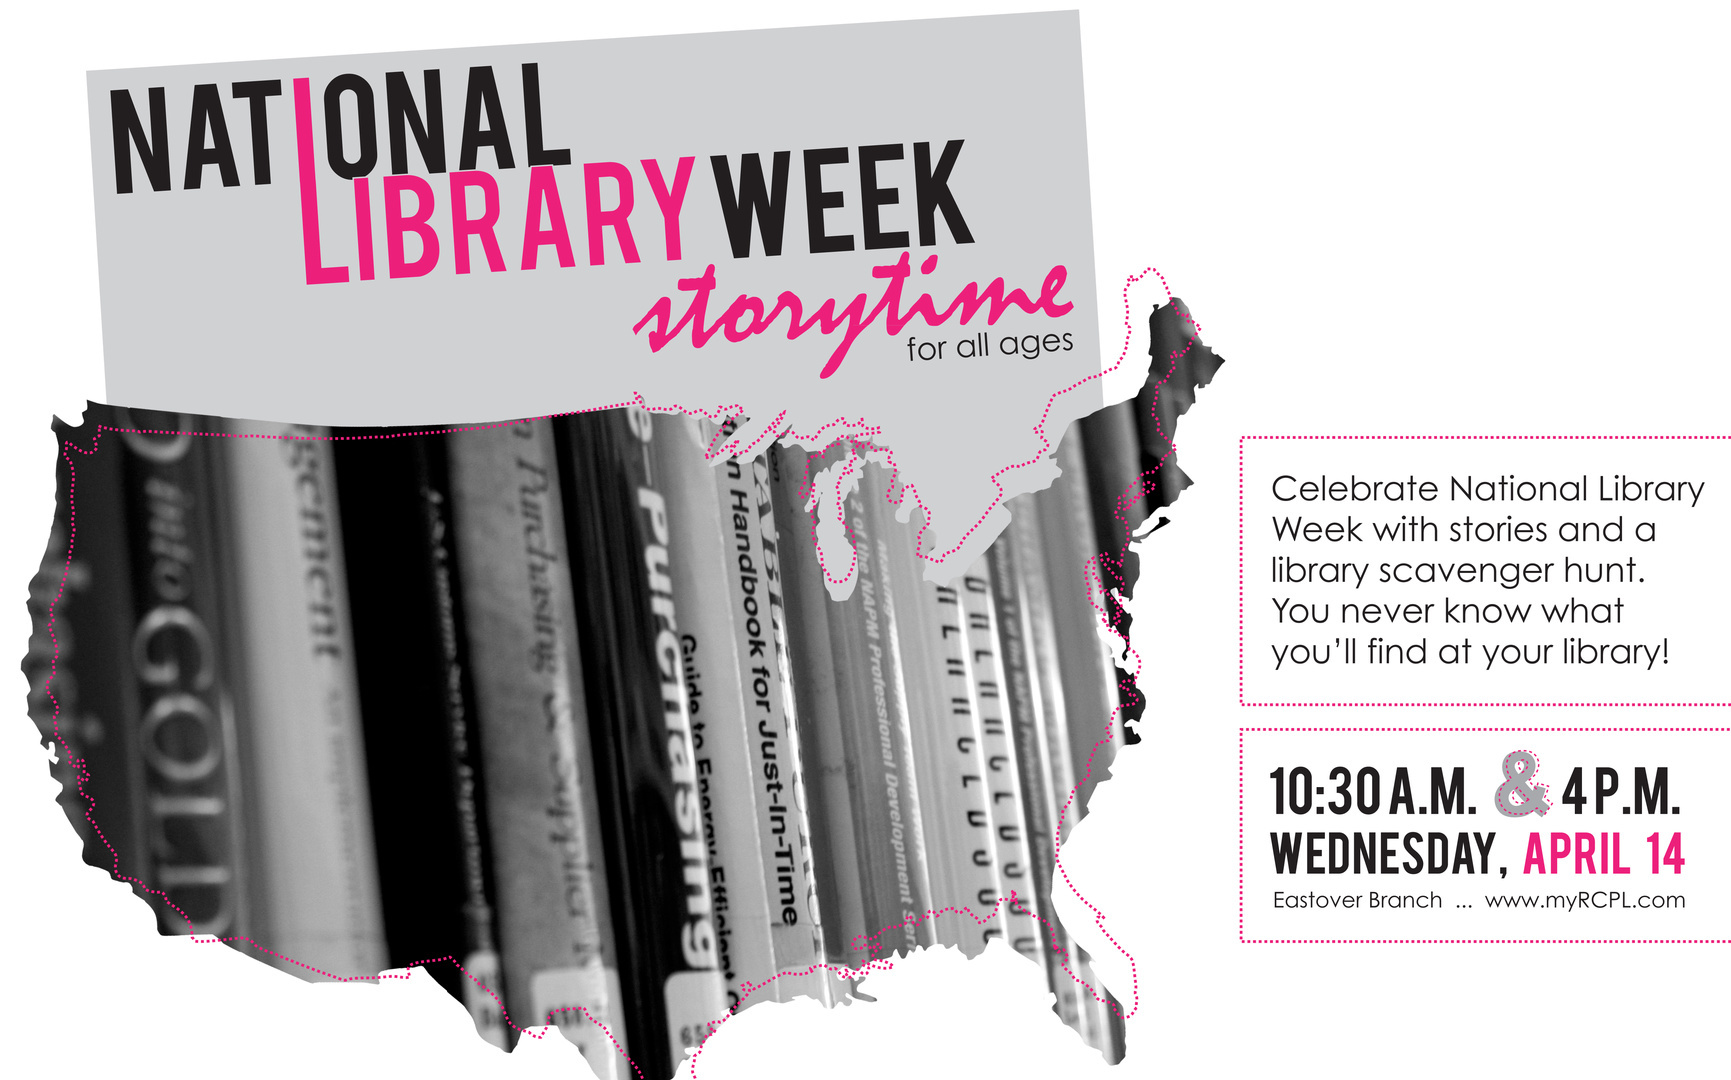 NationalLibraryWeekStorytime_10.jpg